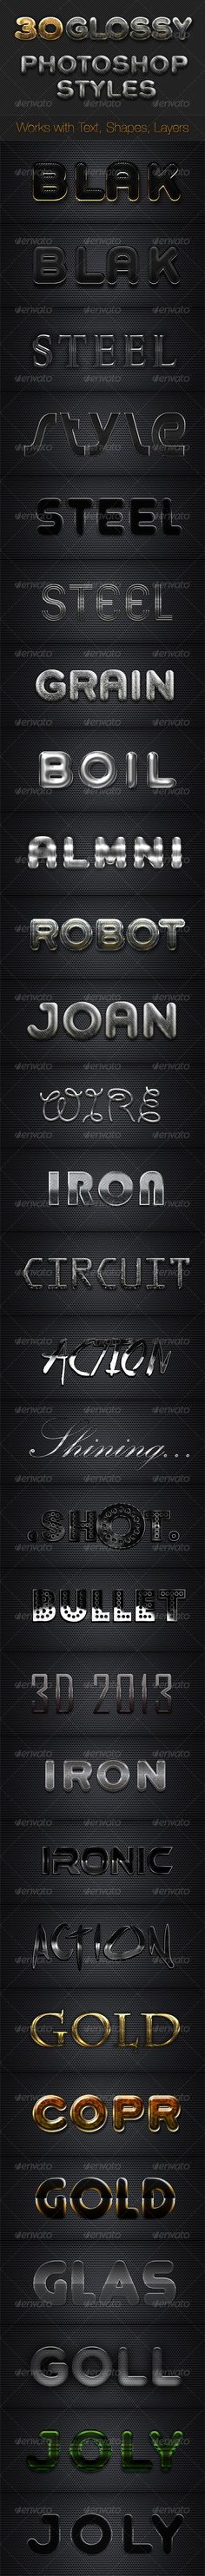 Metallic Chrome Gold steel - Photoshop Styles #GraphicRiver Item Description: 30 Elegant Text effects. Works for texts, shapes, layers, .. anything. INCLUDES : - .asl file with 30 styles. - .psd file with the 30 styles for easy editing/copy/paste. FONTS Are not included in this pack. This pack contains most unique glossy, steel, glass and gold effects and is extremely useful for UI designers, graphic designers. Design Text, bubble text, chiseled text, chrome text, clear text, crystal text…